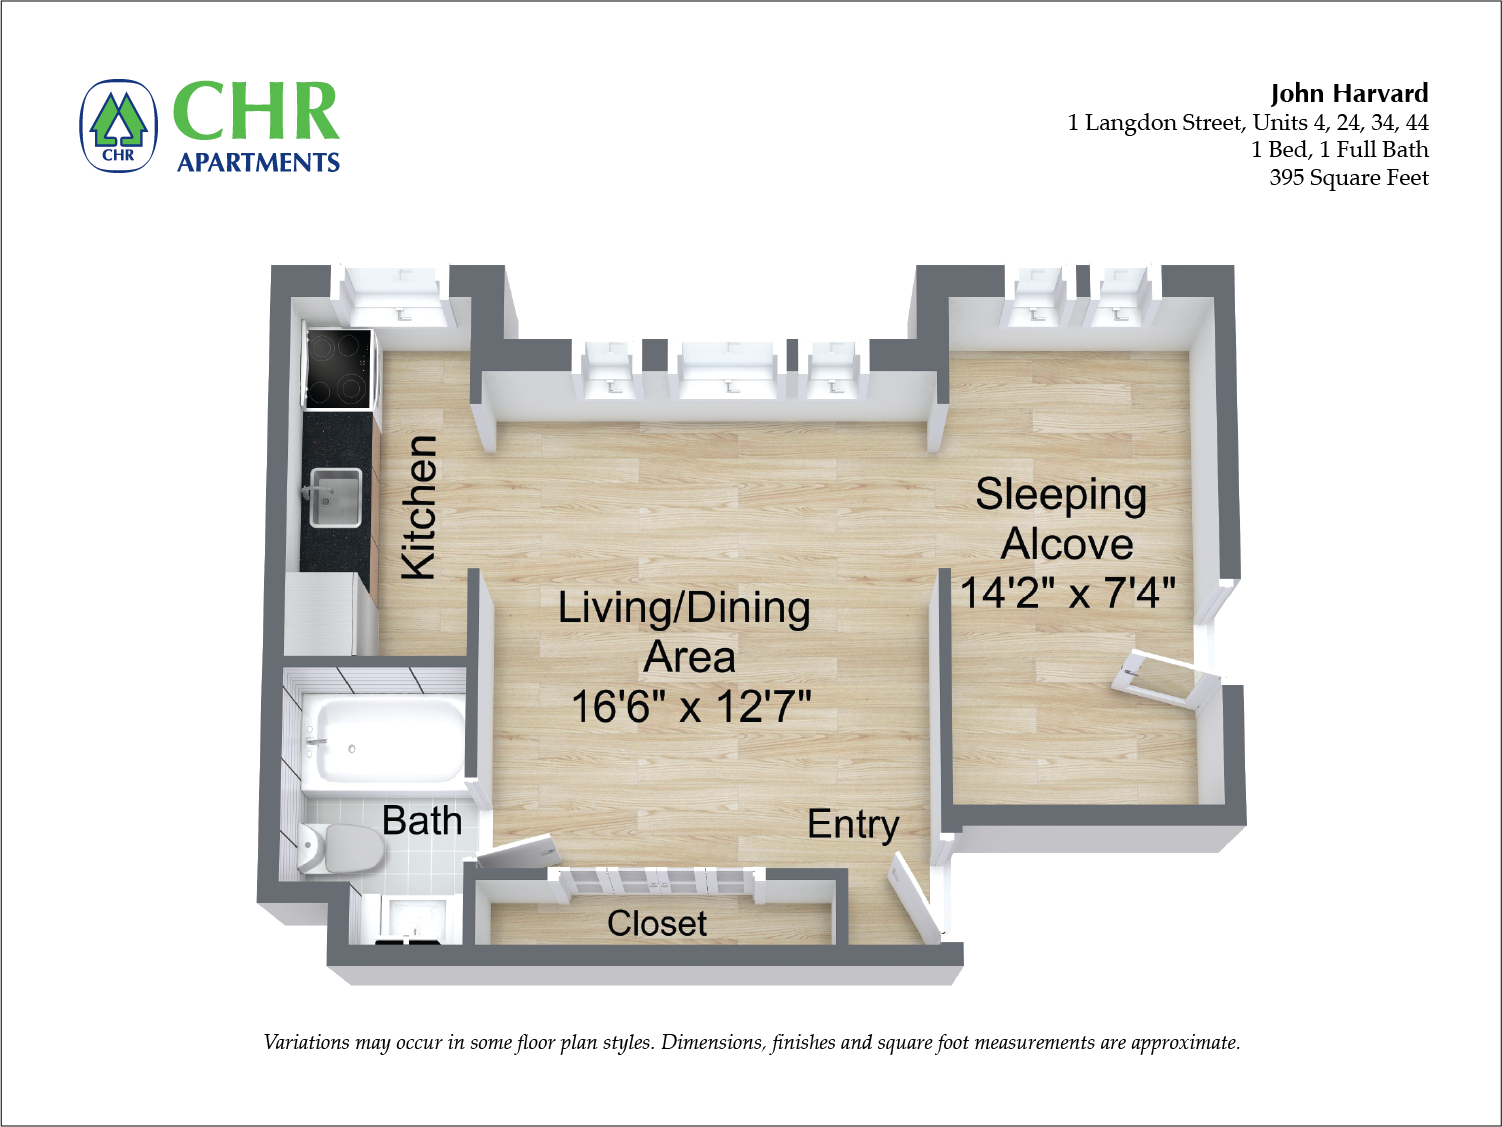 Floor plan 1 Bedroom image 3